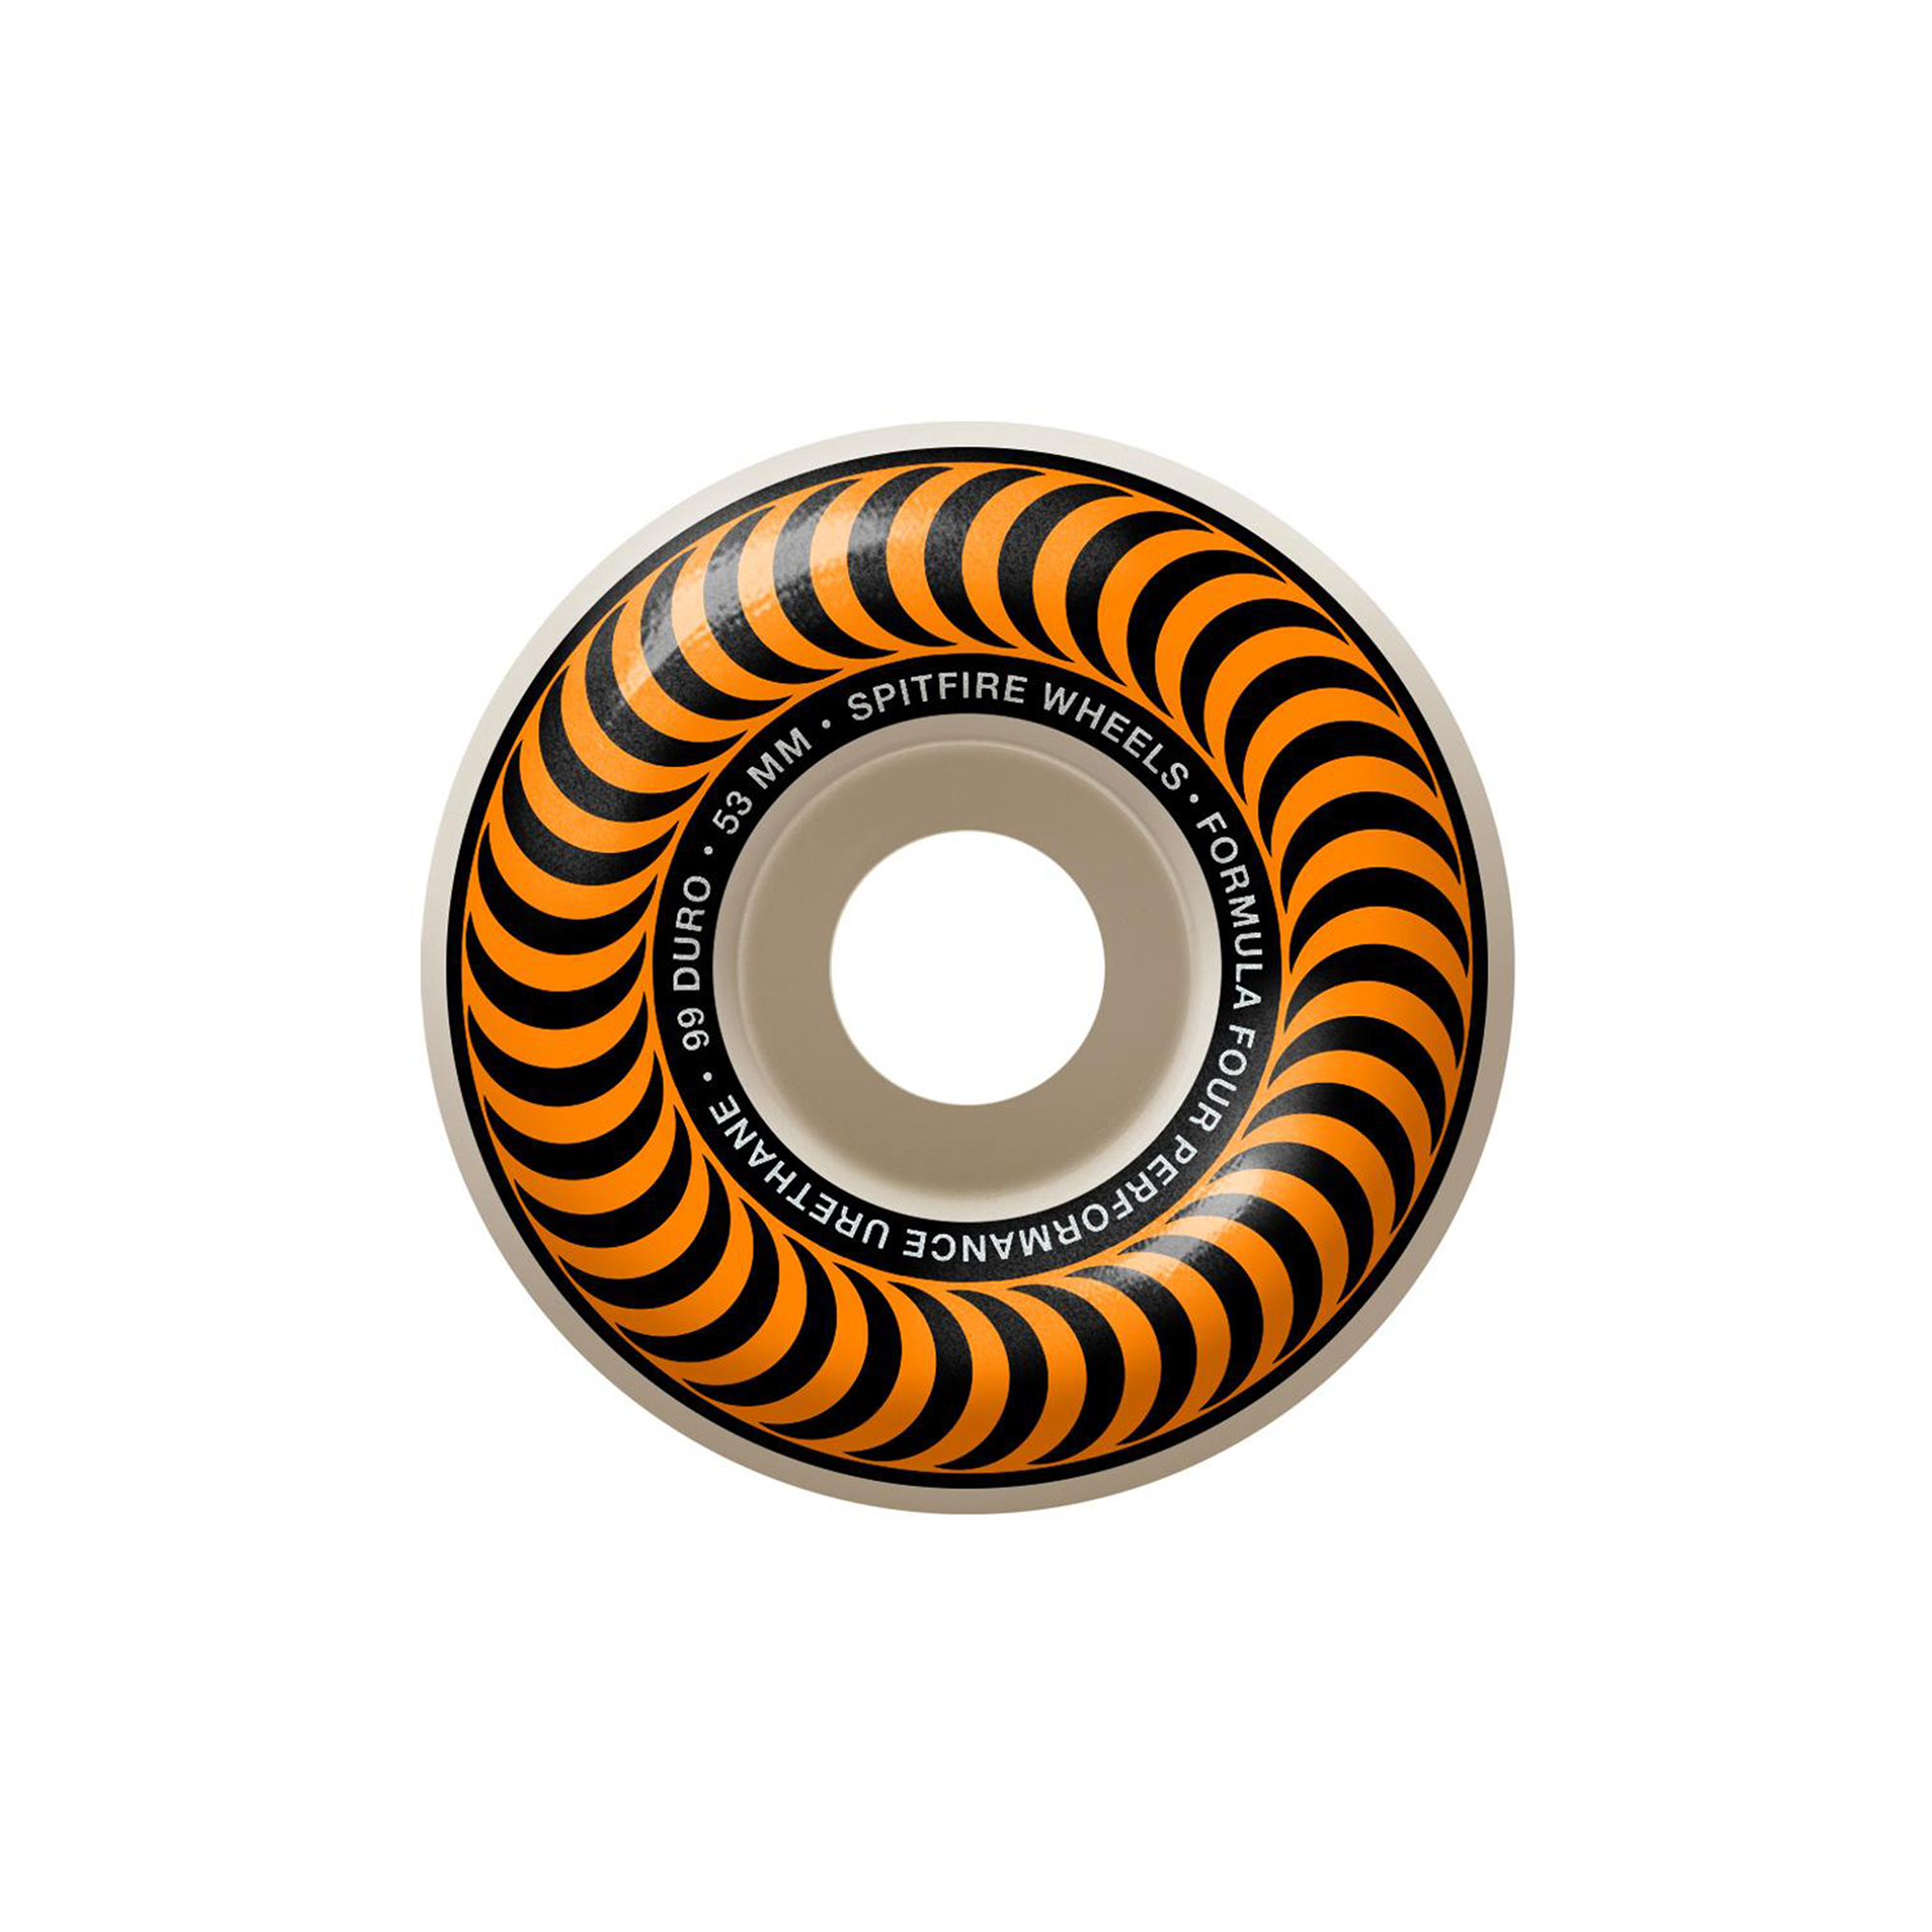 Spitfire Formula Four Classic Swirl 99 Wheel Product Photo #2